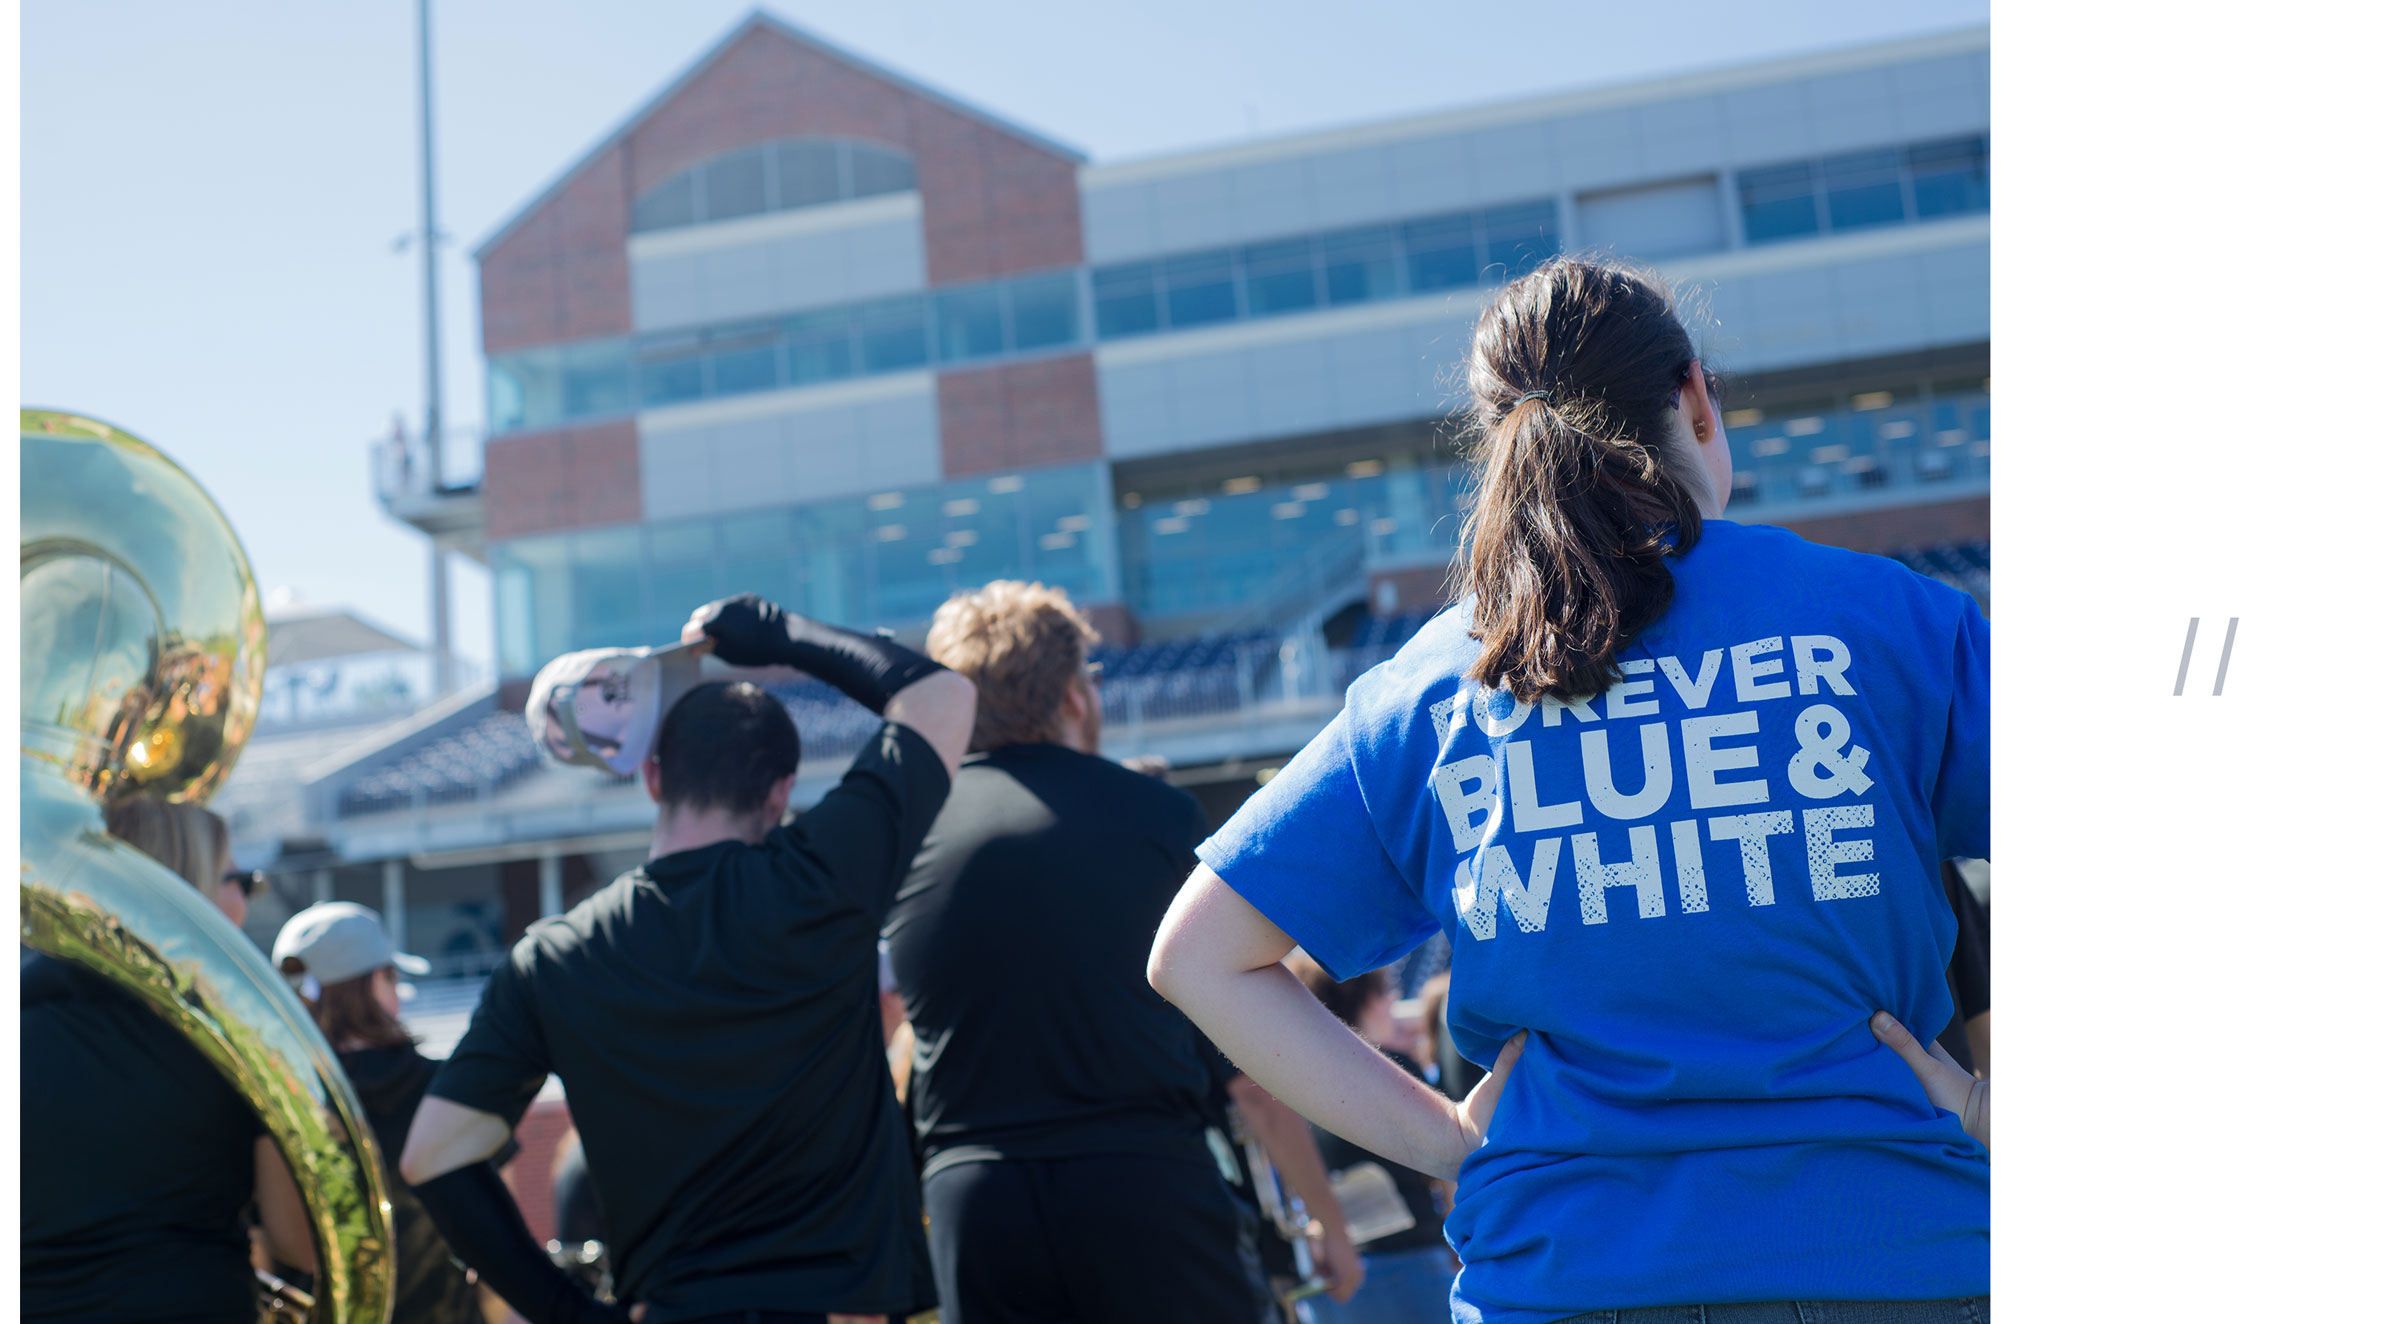 Loren-Marple_Photography_UNH-Homecoming-Alumni-Band_RS55454_LPM_7264_gallery.jpg